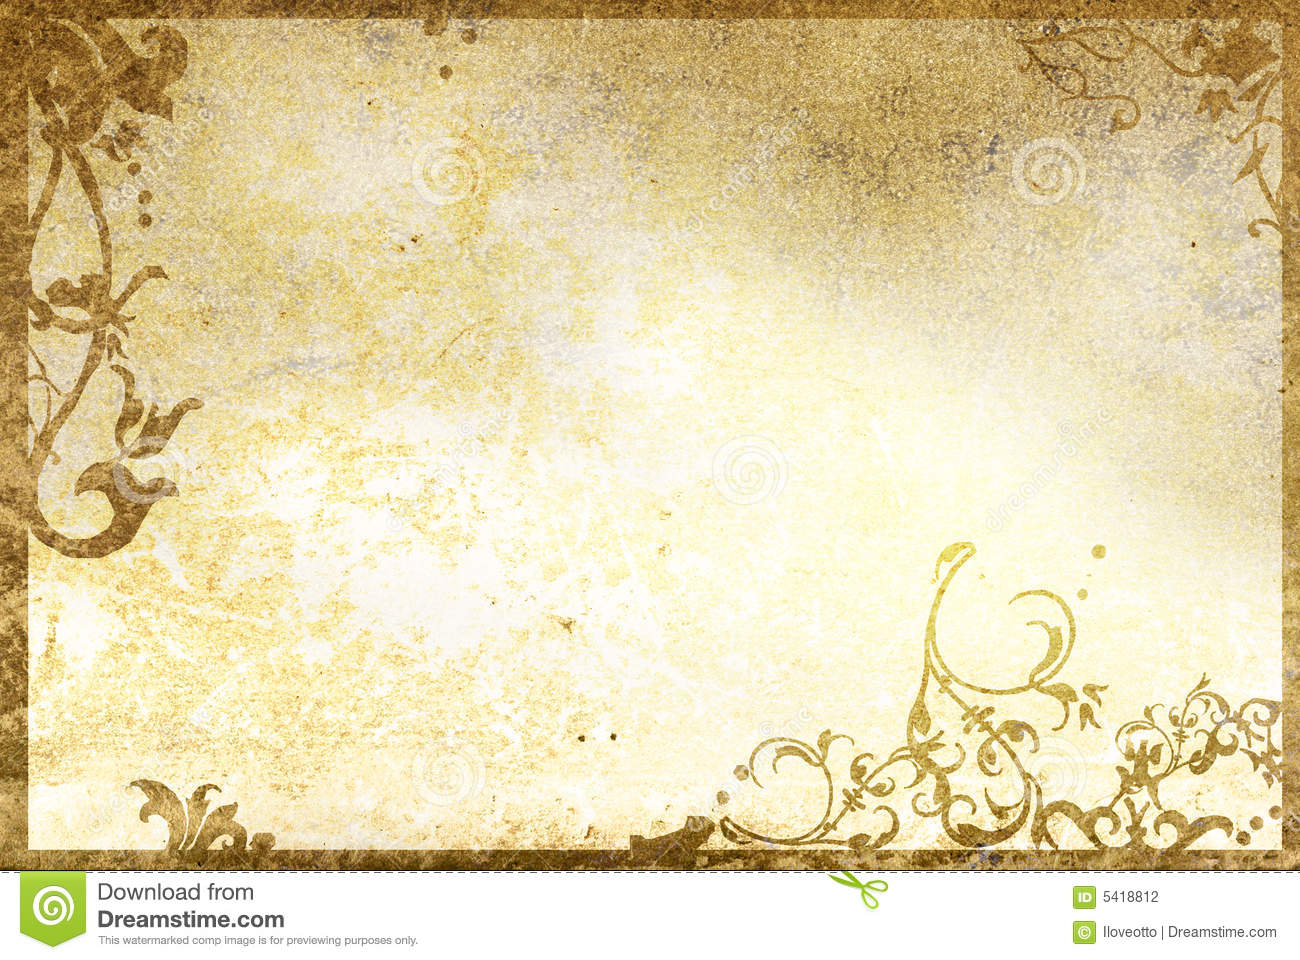 Floral Style Old Paper Textures Frame Stock Image - Image: 5839891